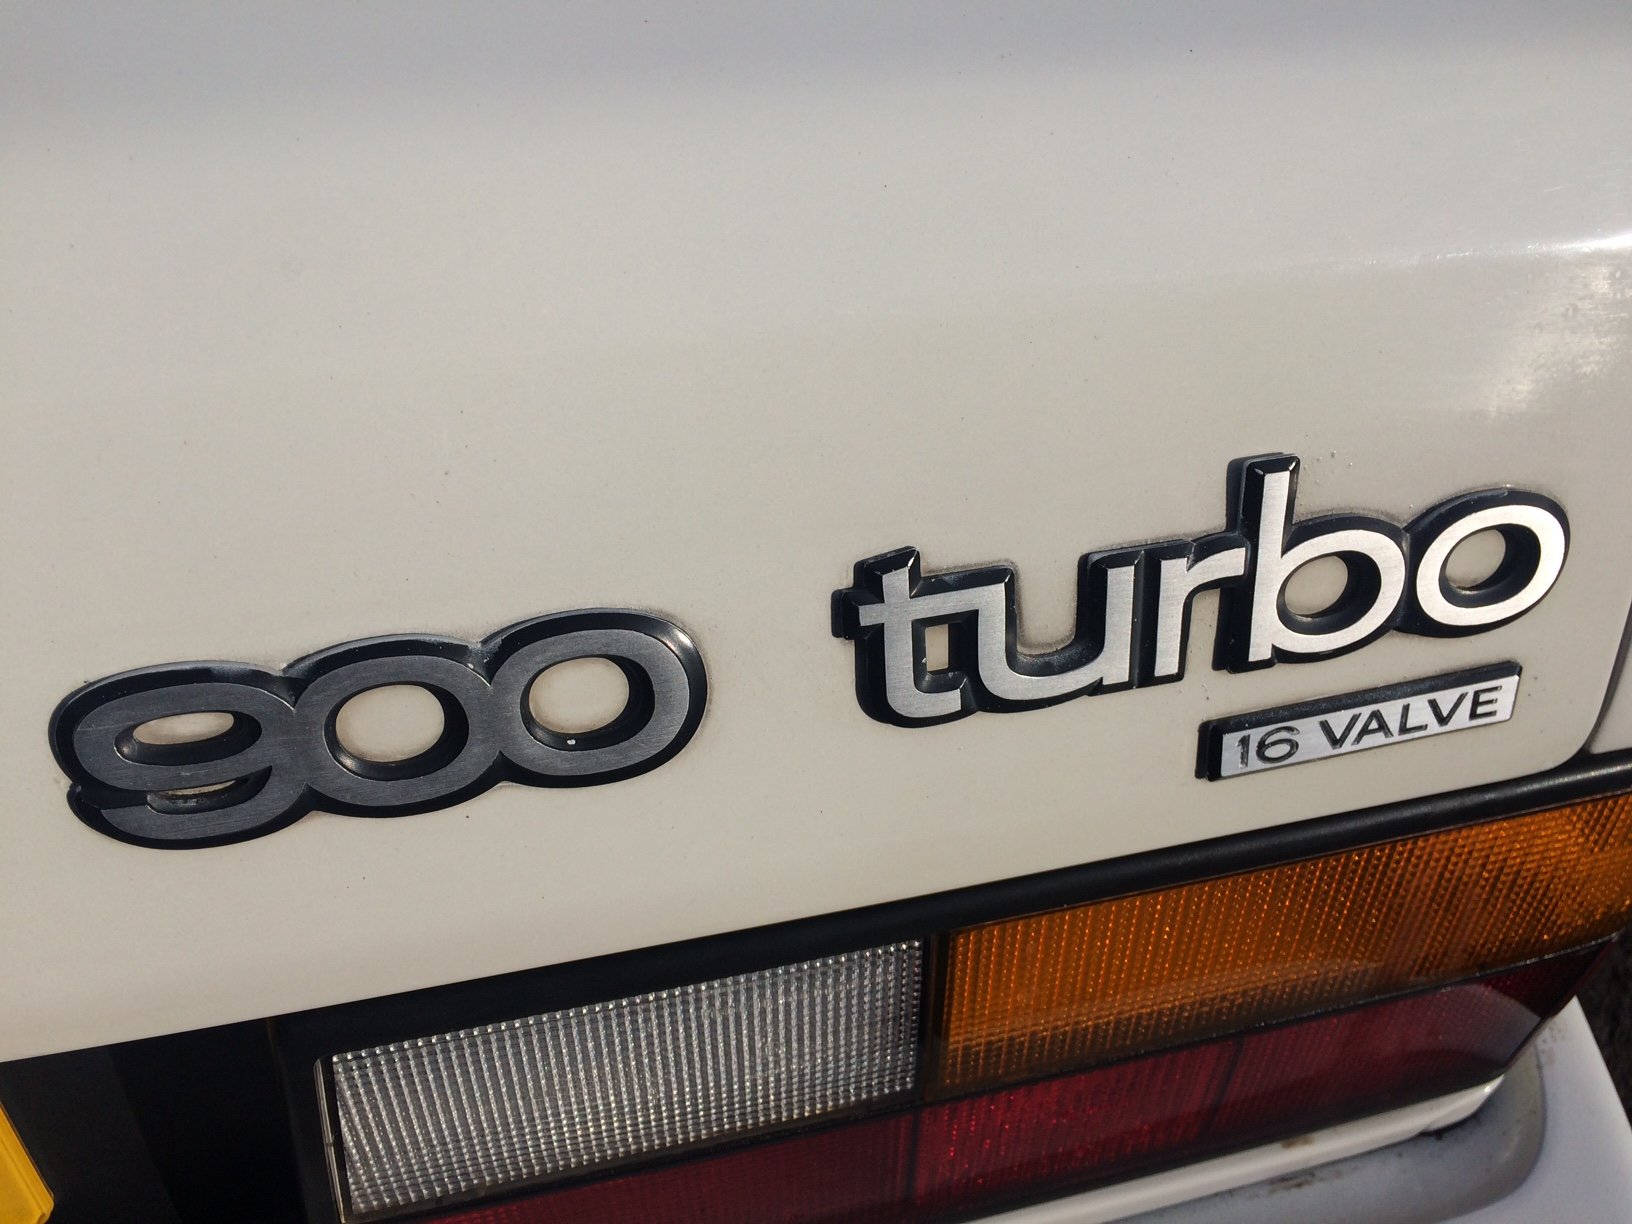 1988 SAAB 900 Turbo 16 Convertible Airflow For Sale (picture 6 of 12)